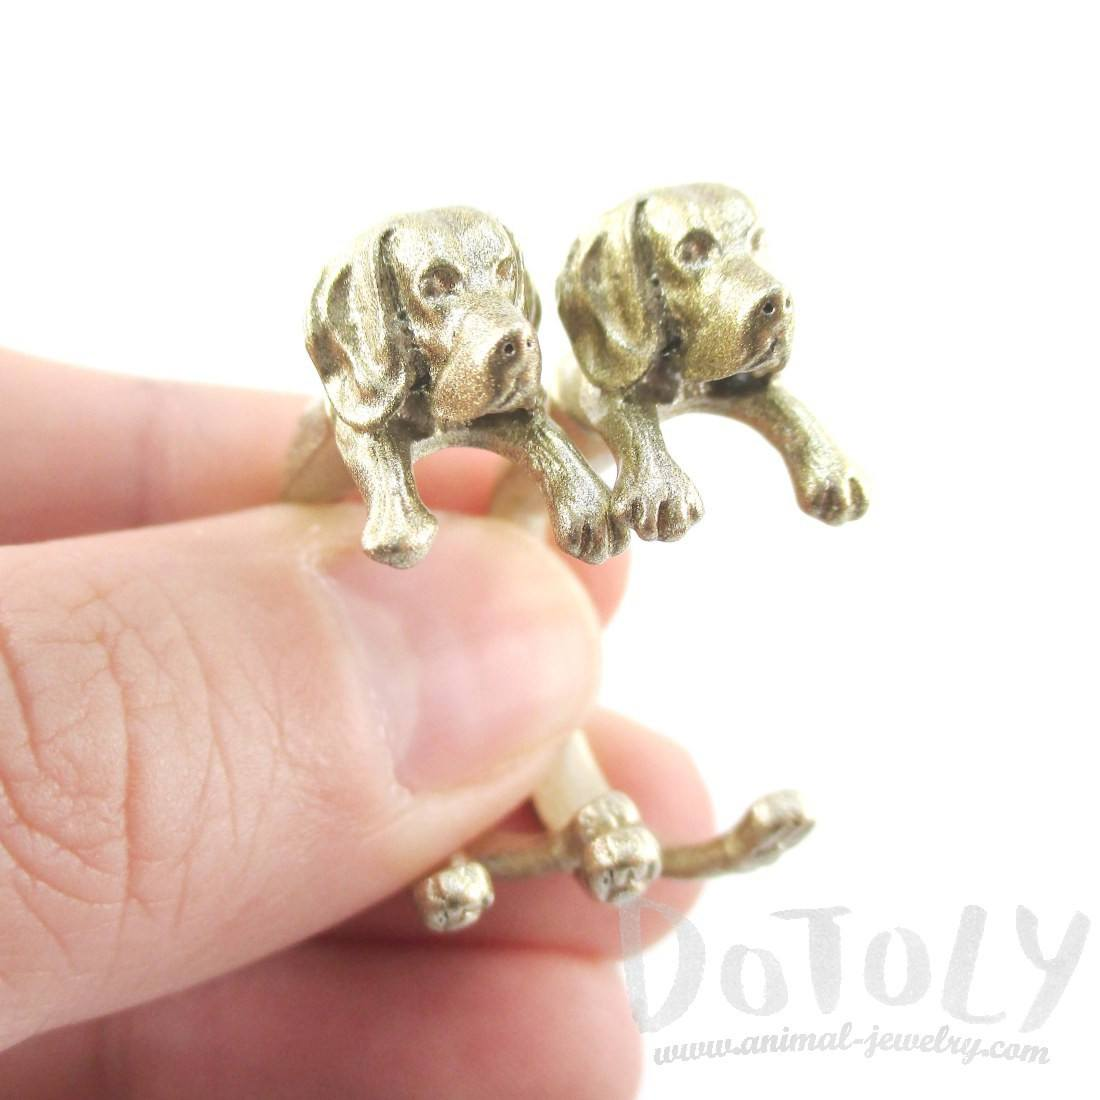 Beagle Puppy Dog Shaped Two Part Stud Earrings in Gold